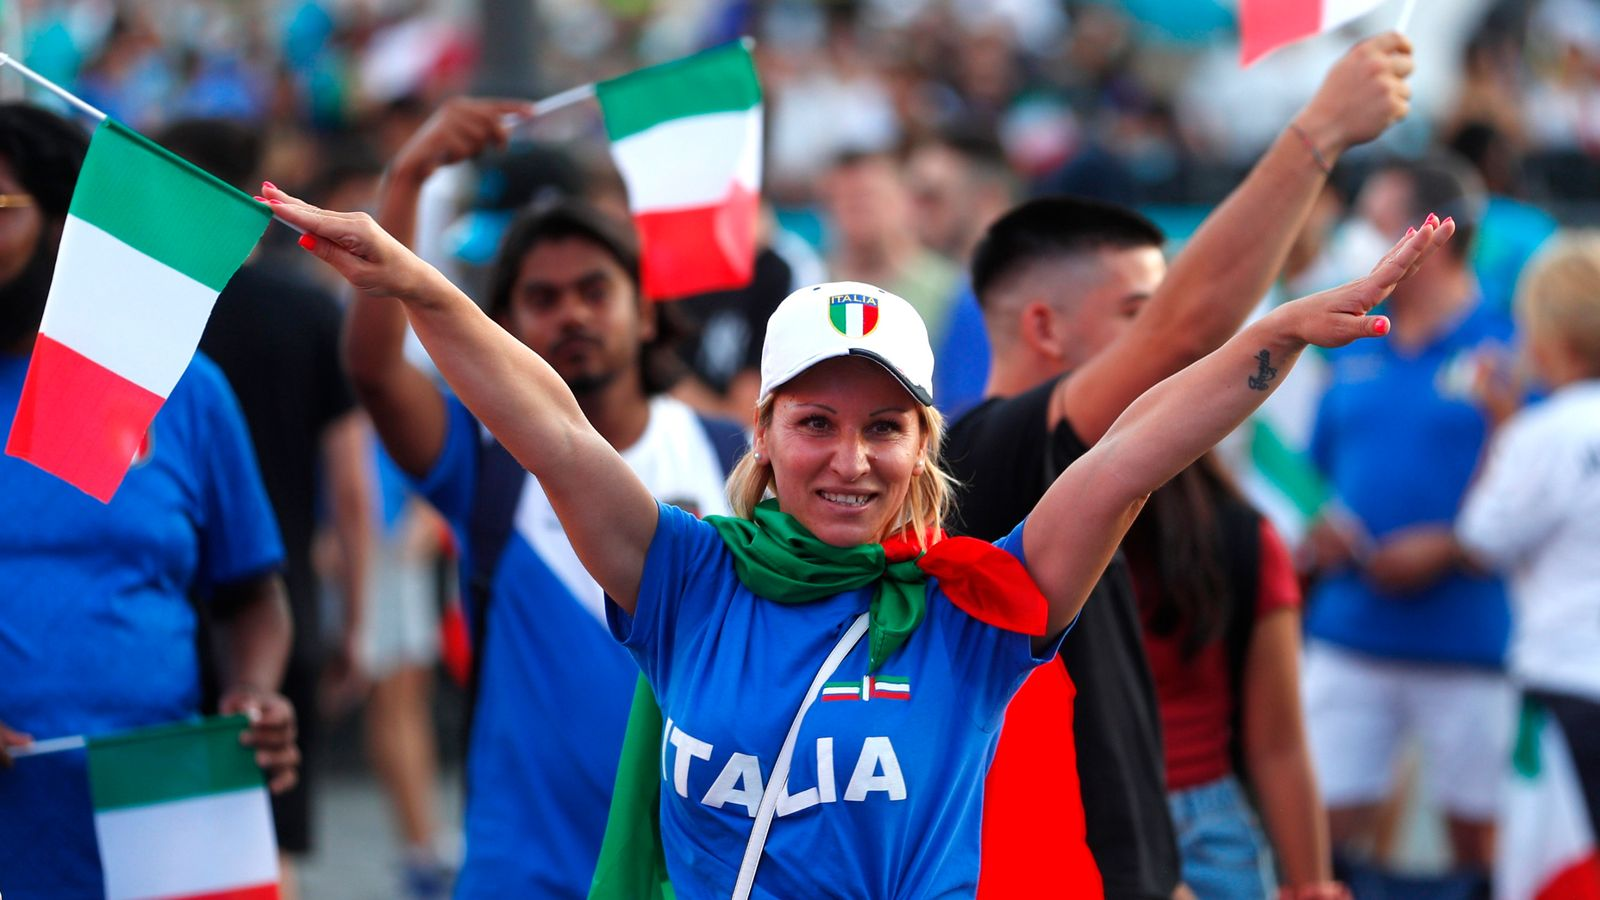 For Italian fans, now is the moment to atone for haunting failure to qualify for last World Cup